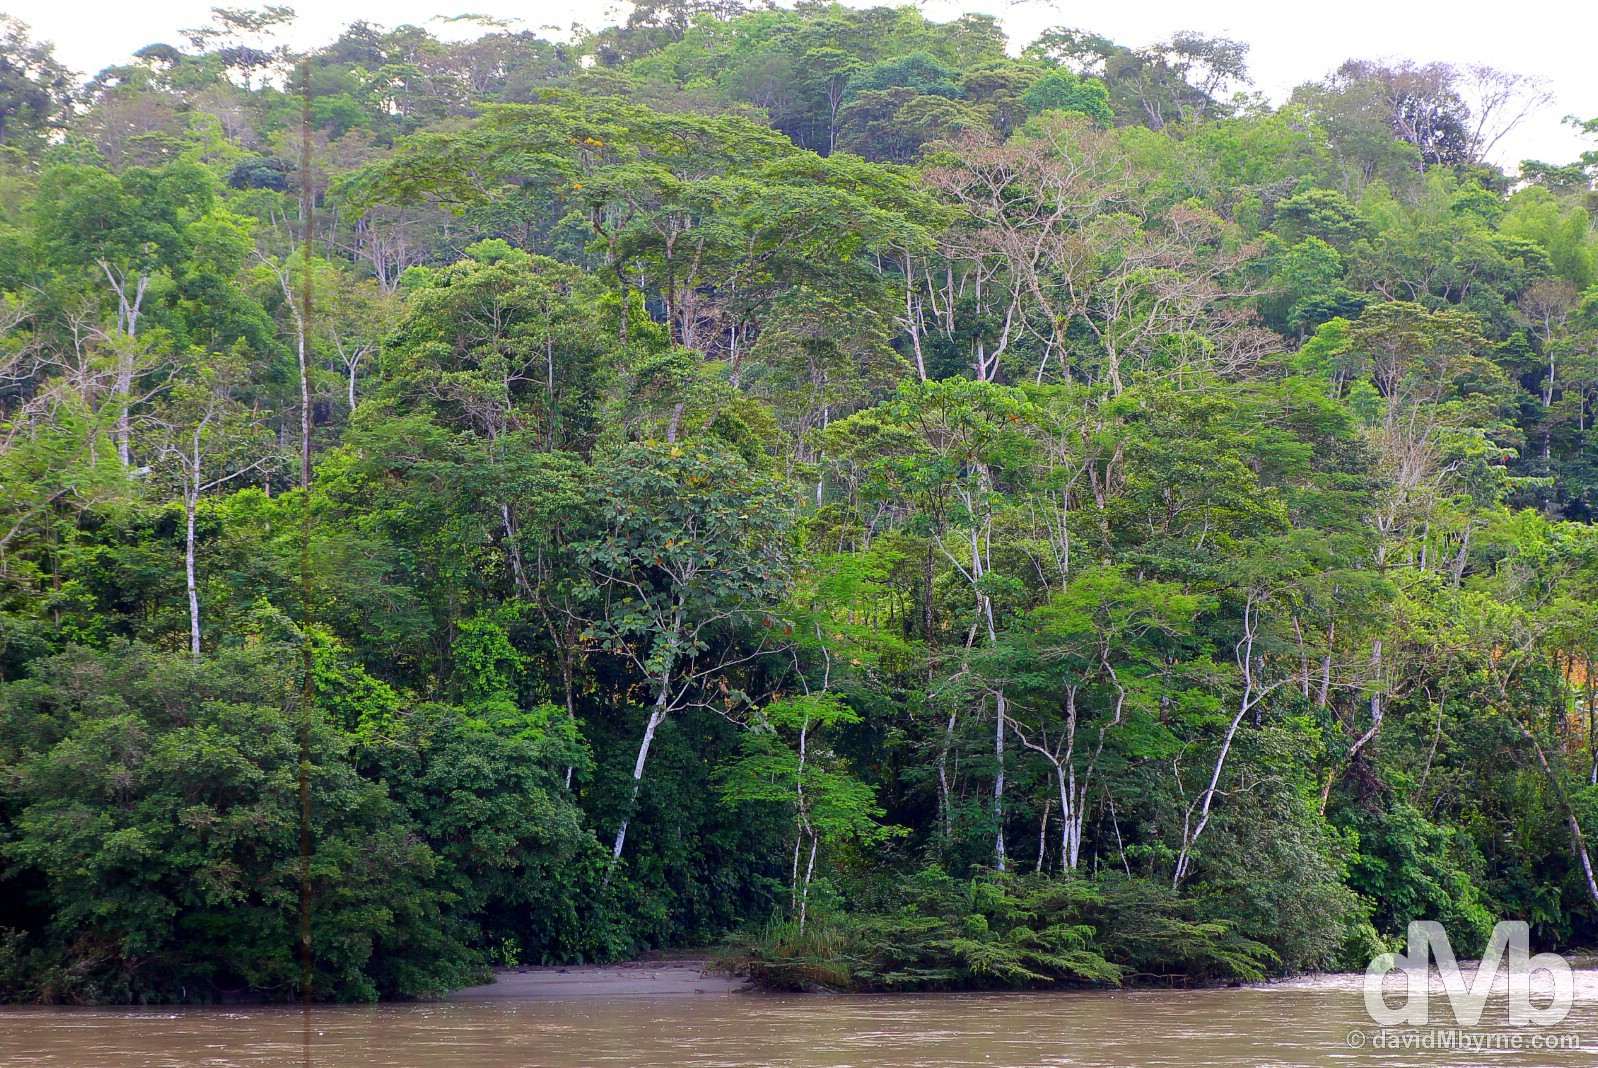 The Ecuadorian rain forest. July 13, 2015.